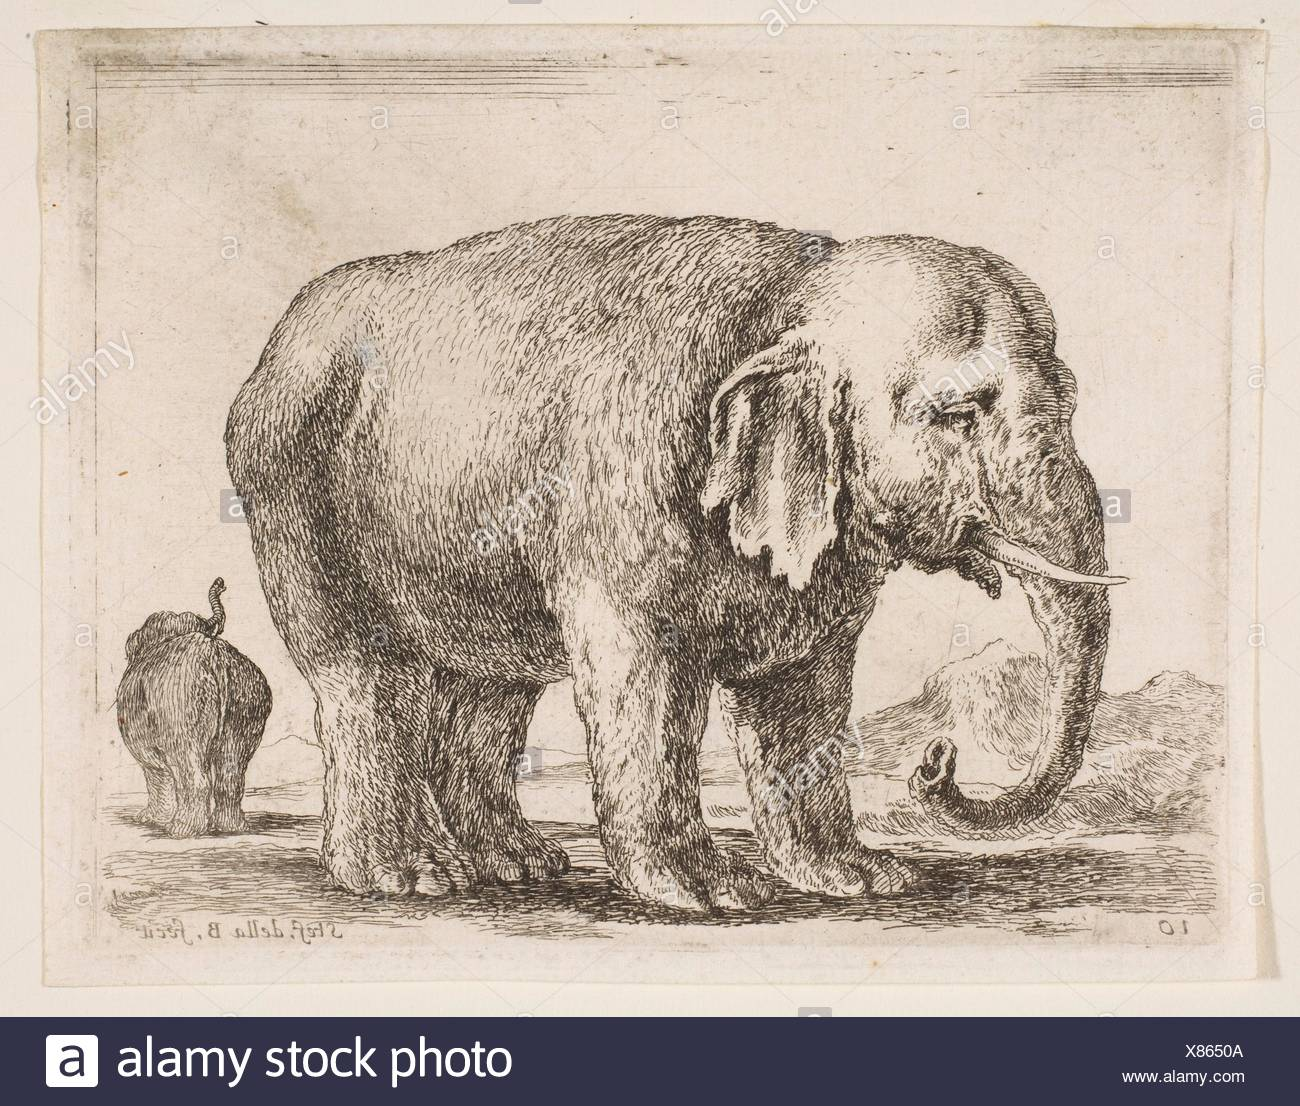 Plate 10: elephant, from 'Various animals' (Diversi animali). Series/Portfolio: 'Various animals' (Diversi animali); Artist: Stefano della Bella - Stock Image